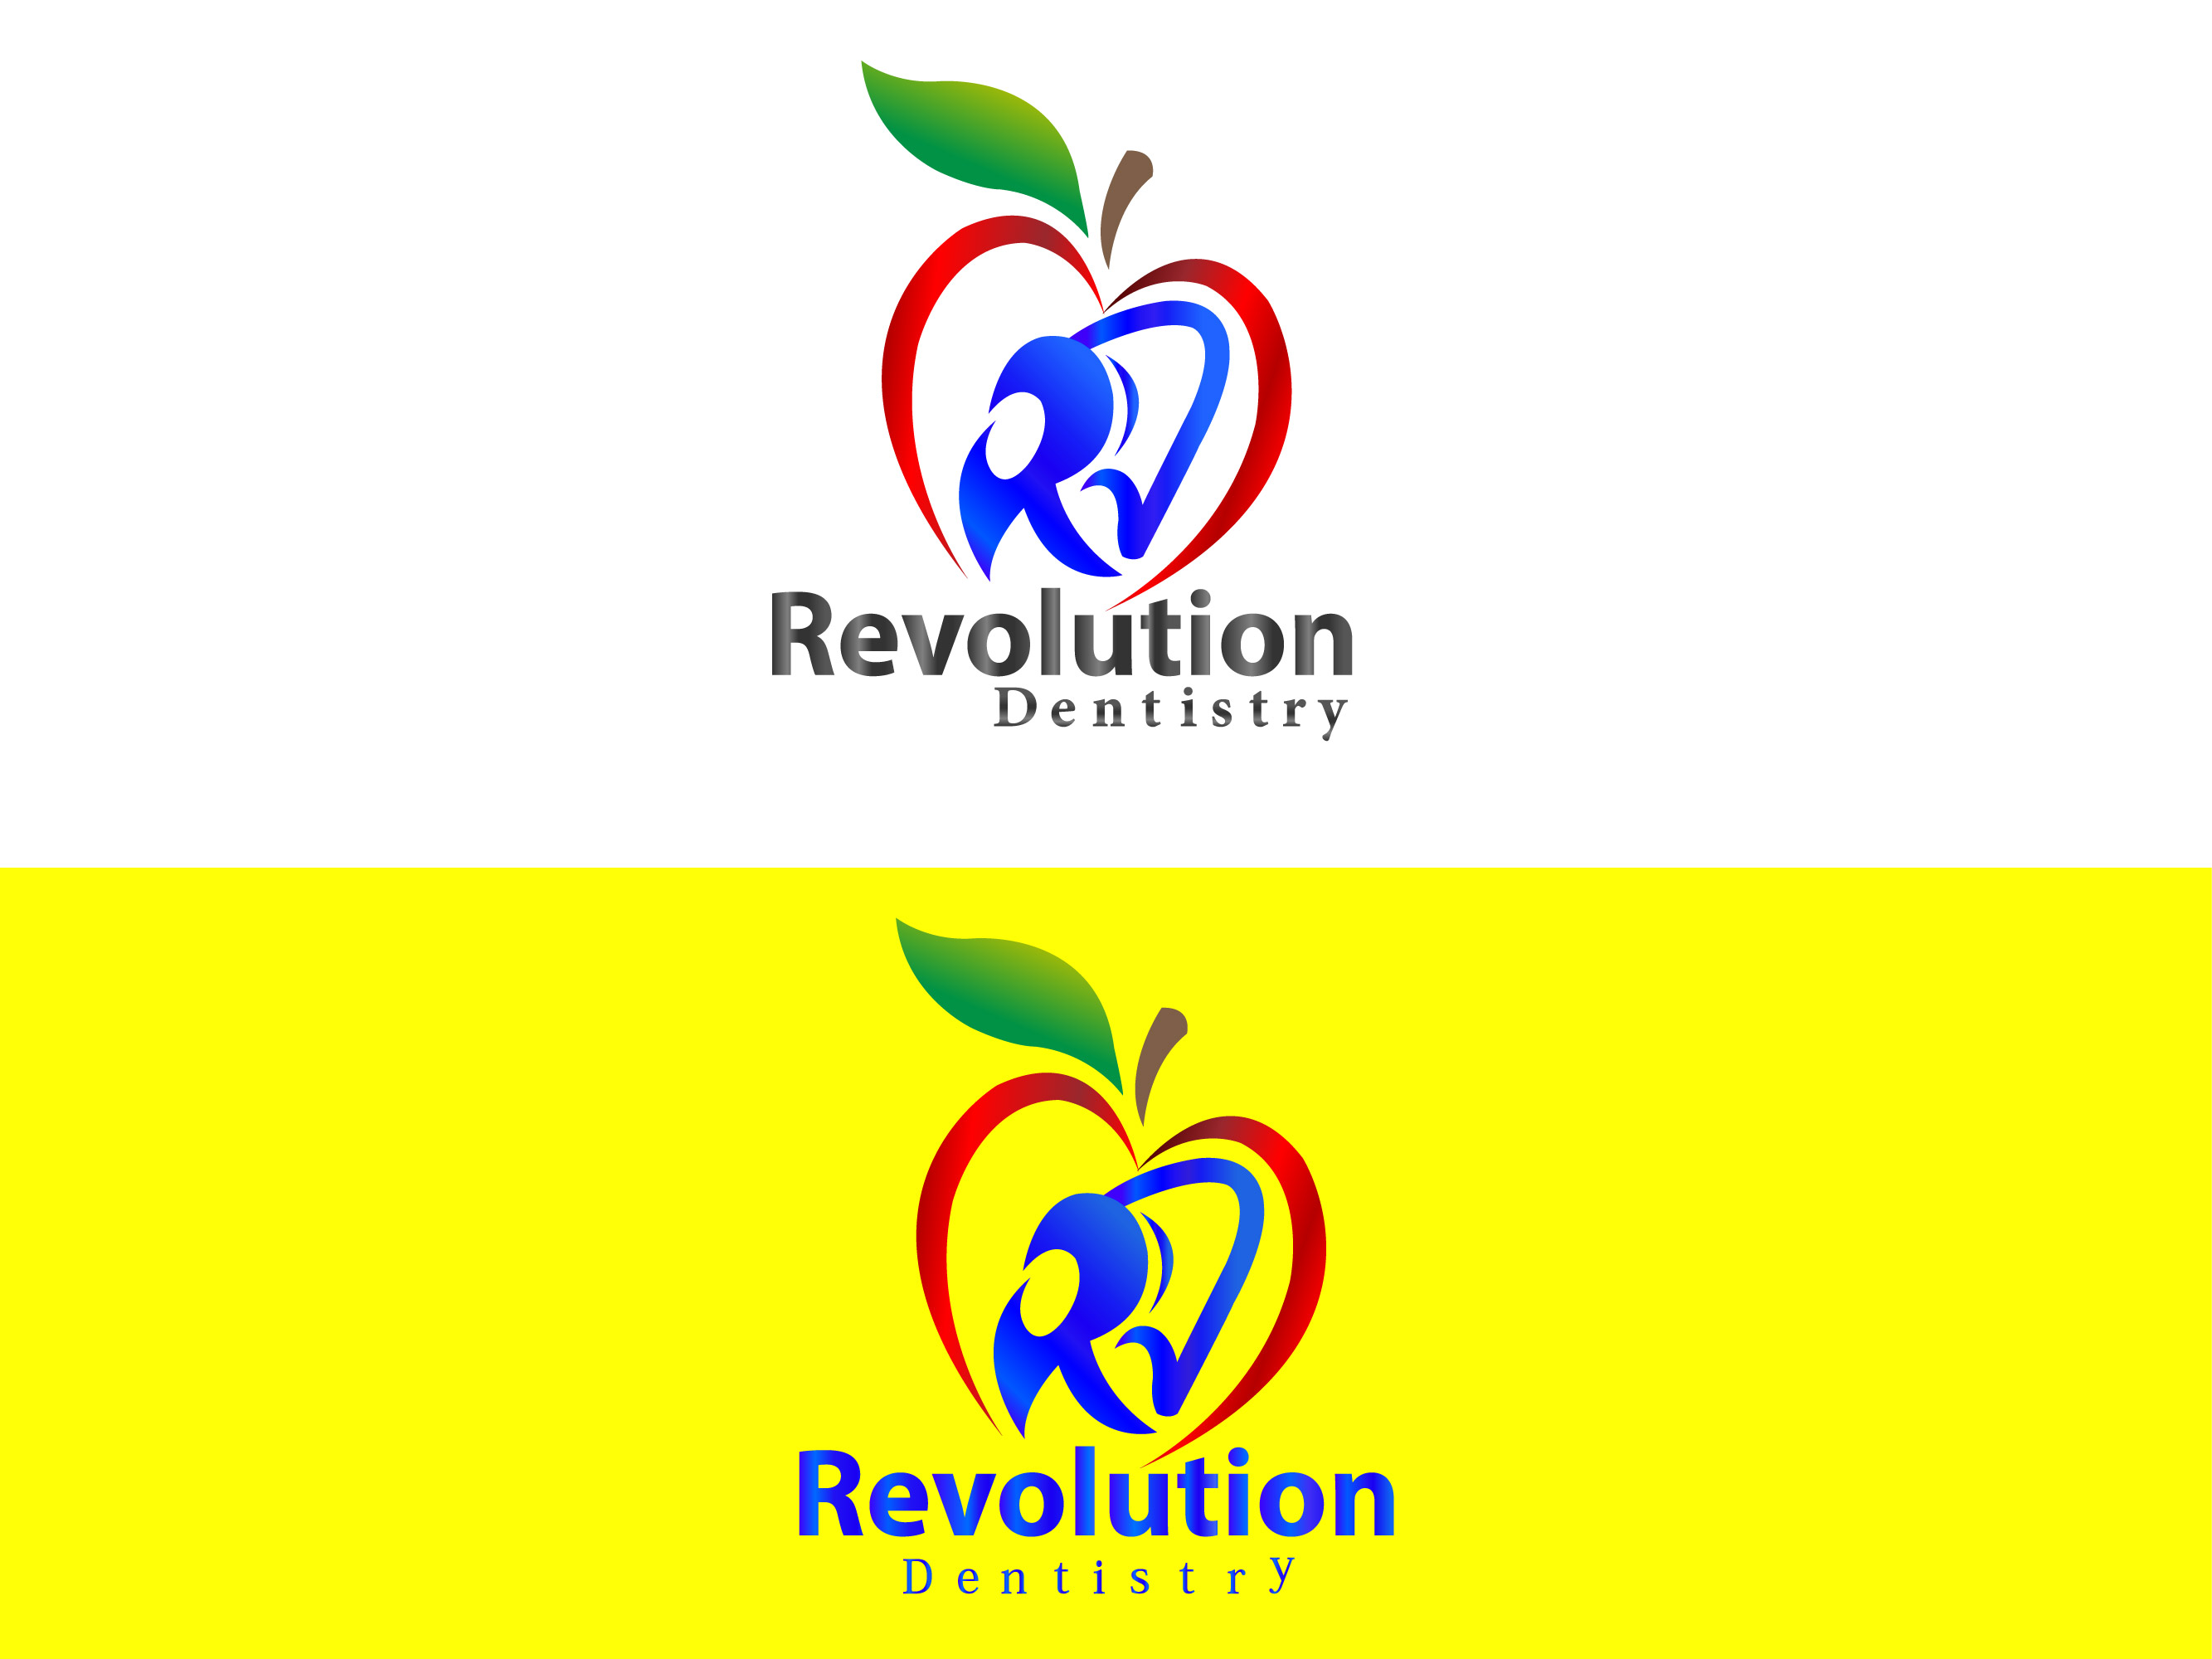 Logo Design by Kishor Patil - Entry No. 85 in the Logo Design Contest Artistic Logo Design for Revolution Dentistry.